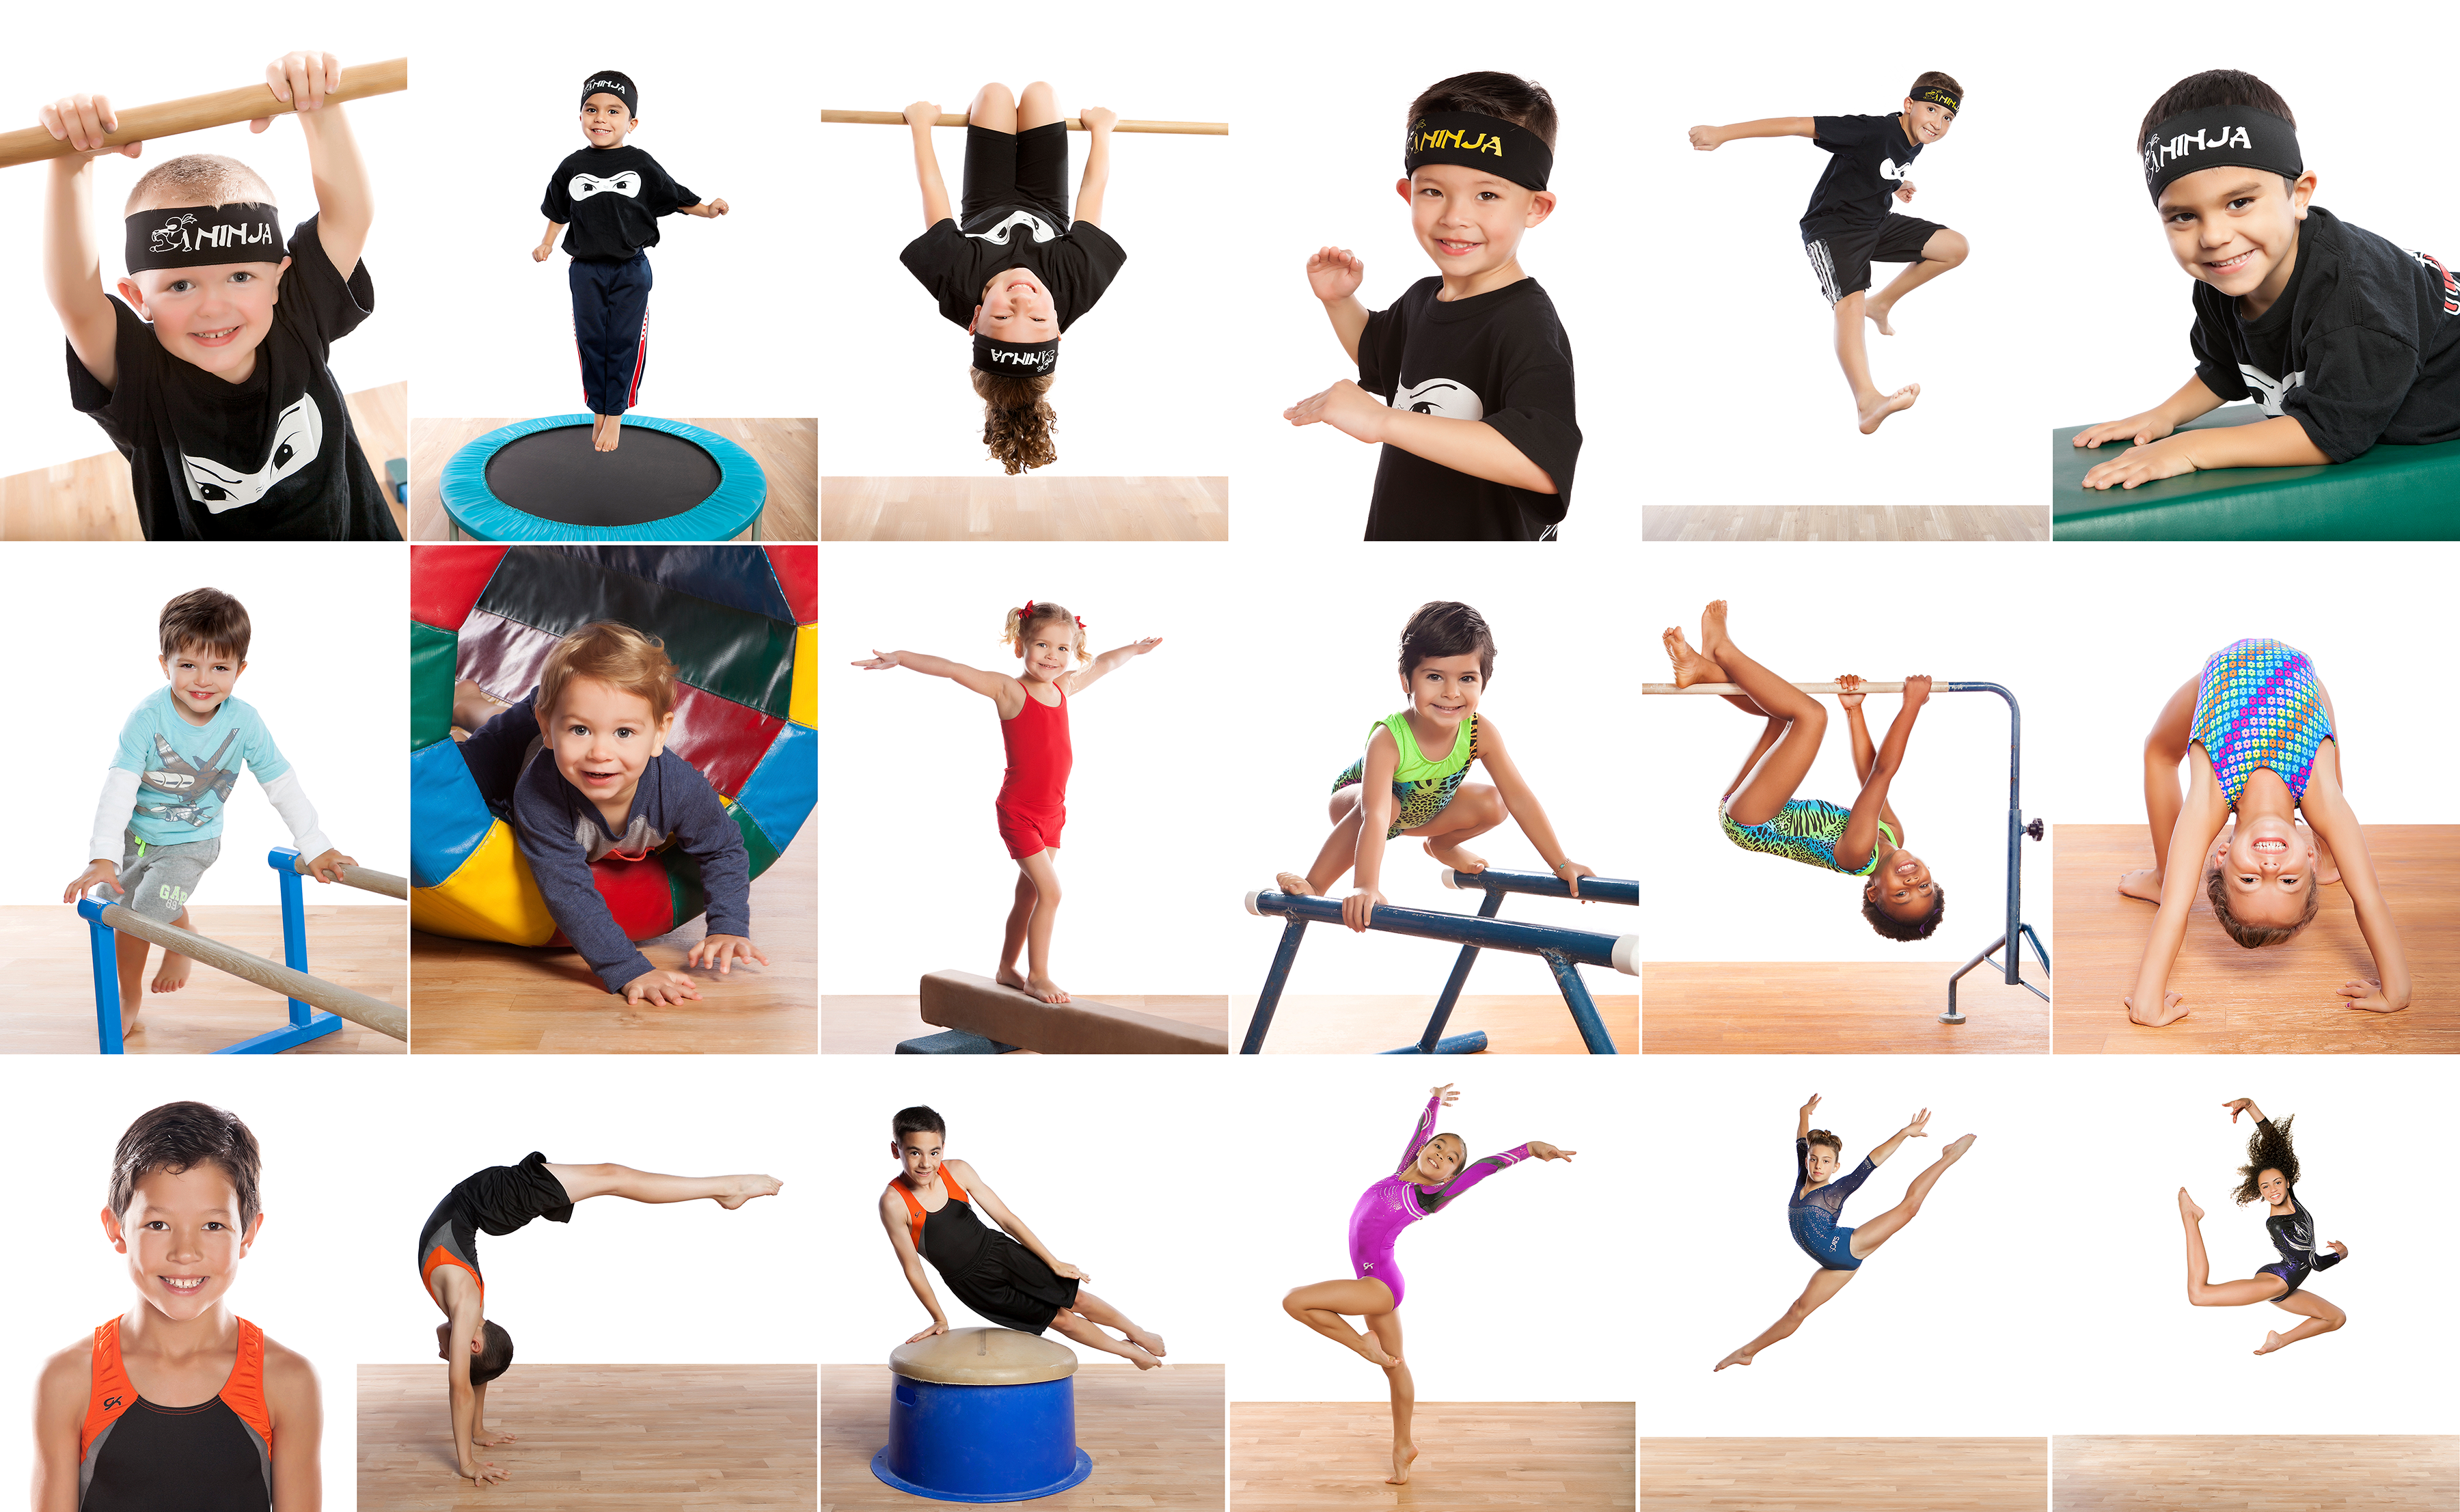 Ninja Zone, Recreational Gymnastics and Competitive Gymnastics Photography